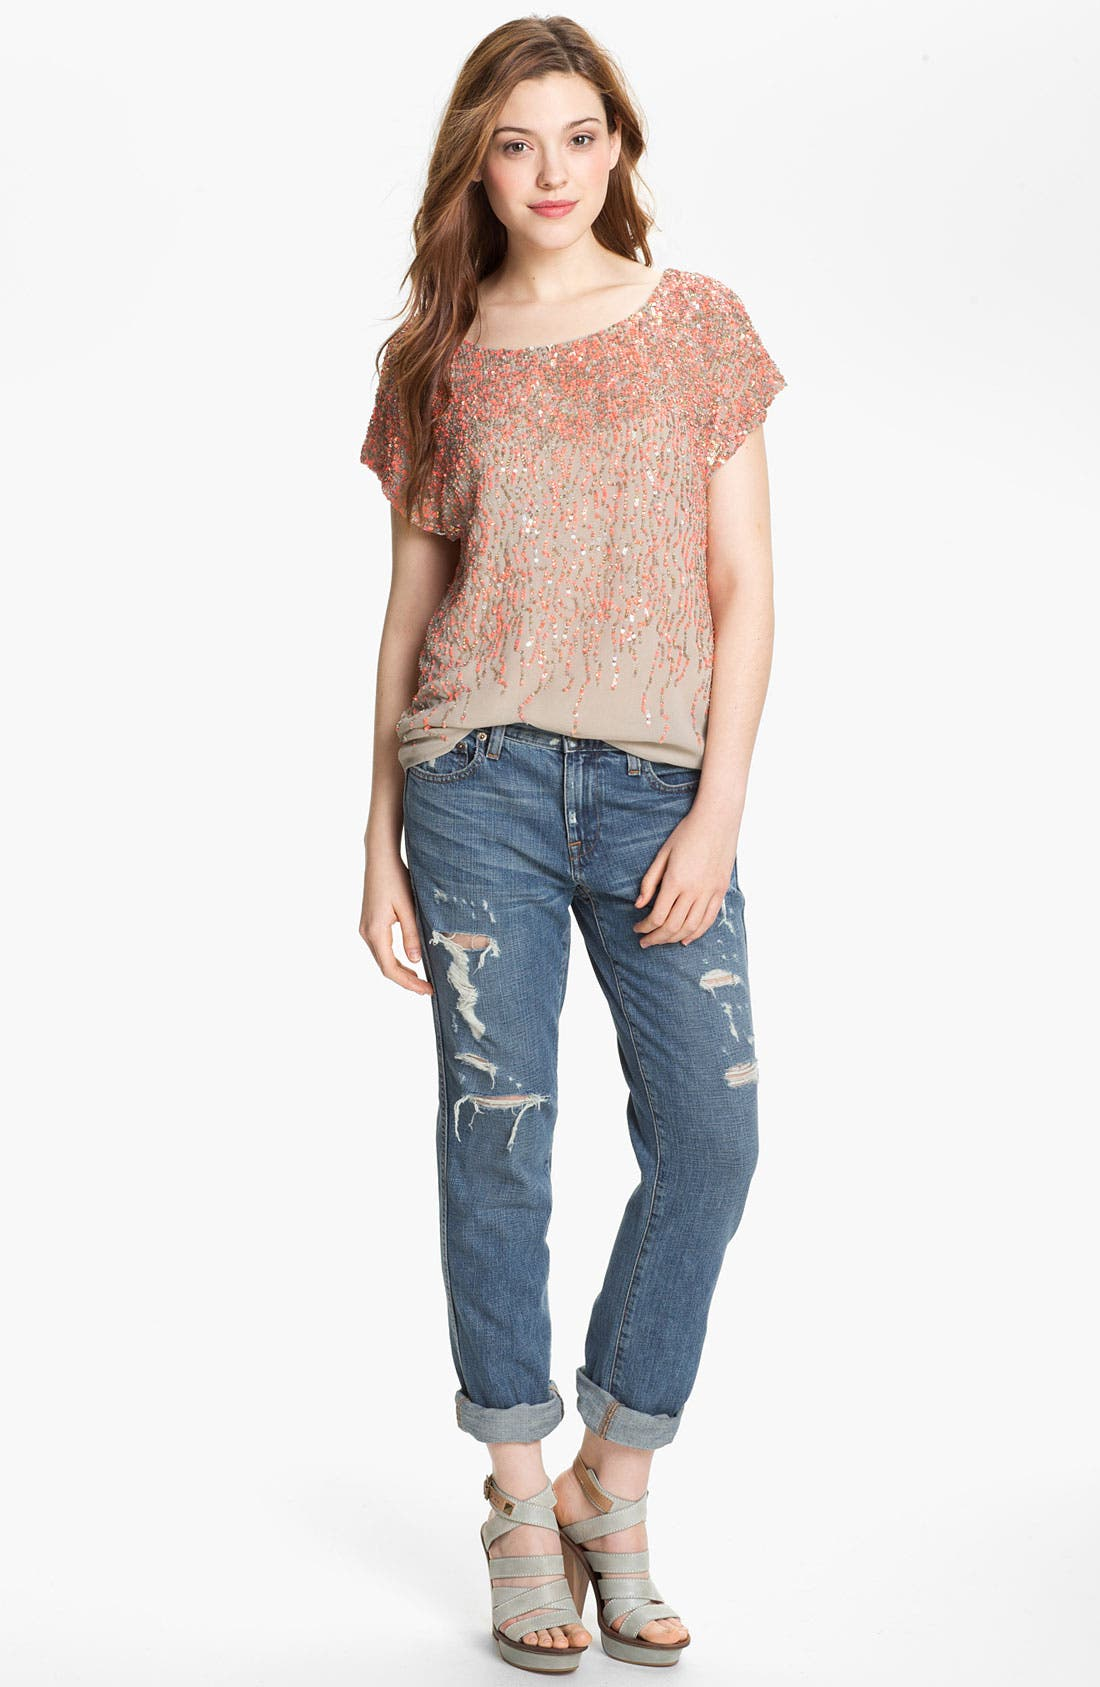 Alternate Image 1 Selected - Vince Camuto Sequin Blouse